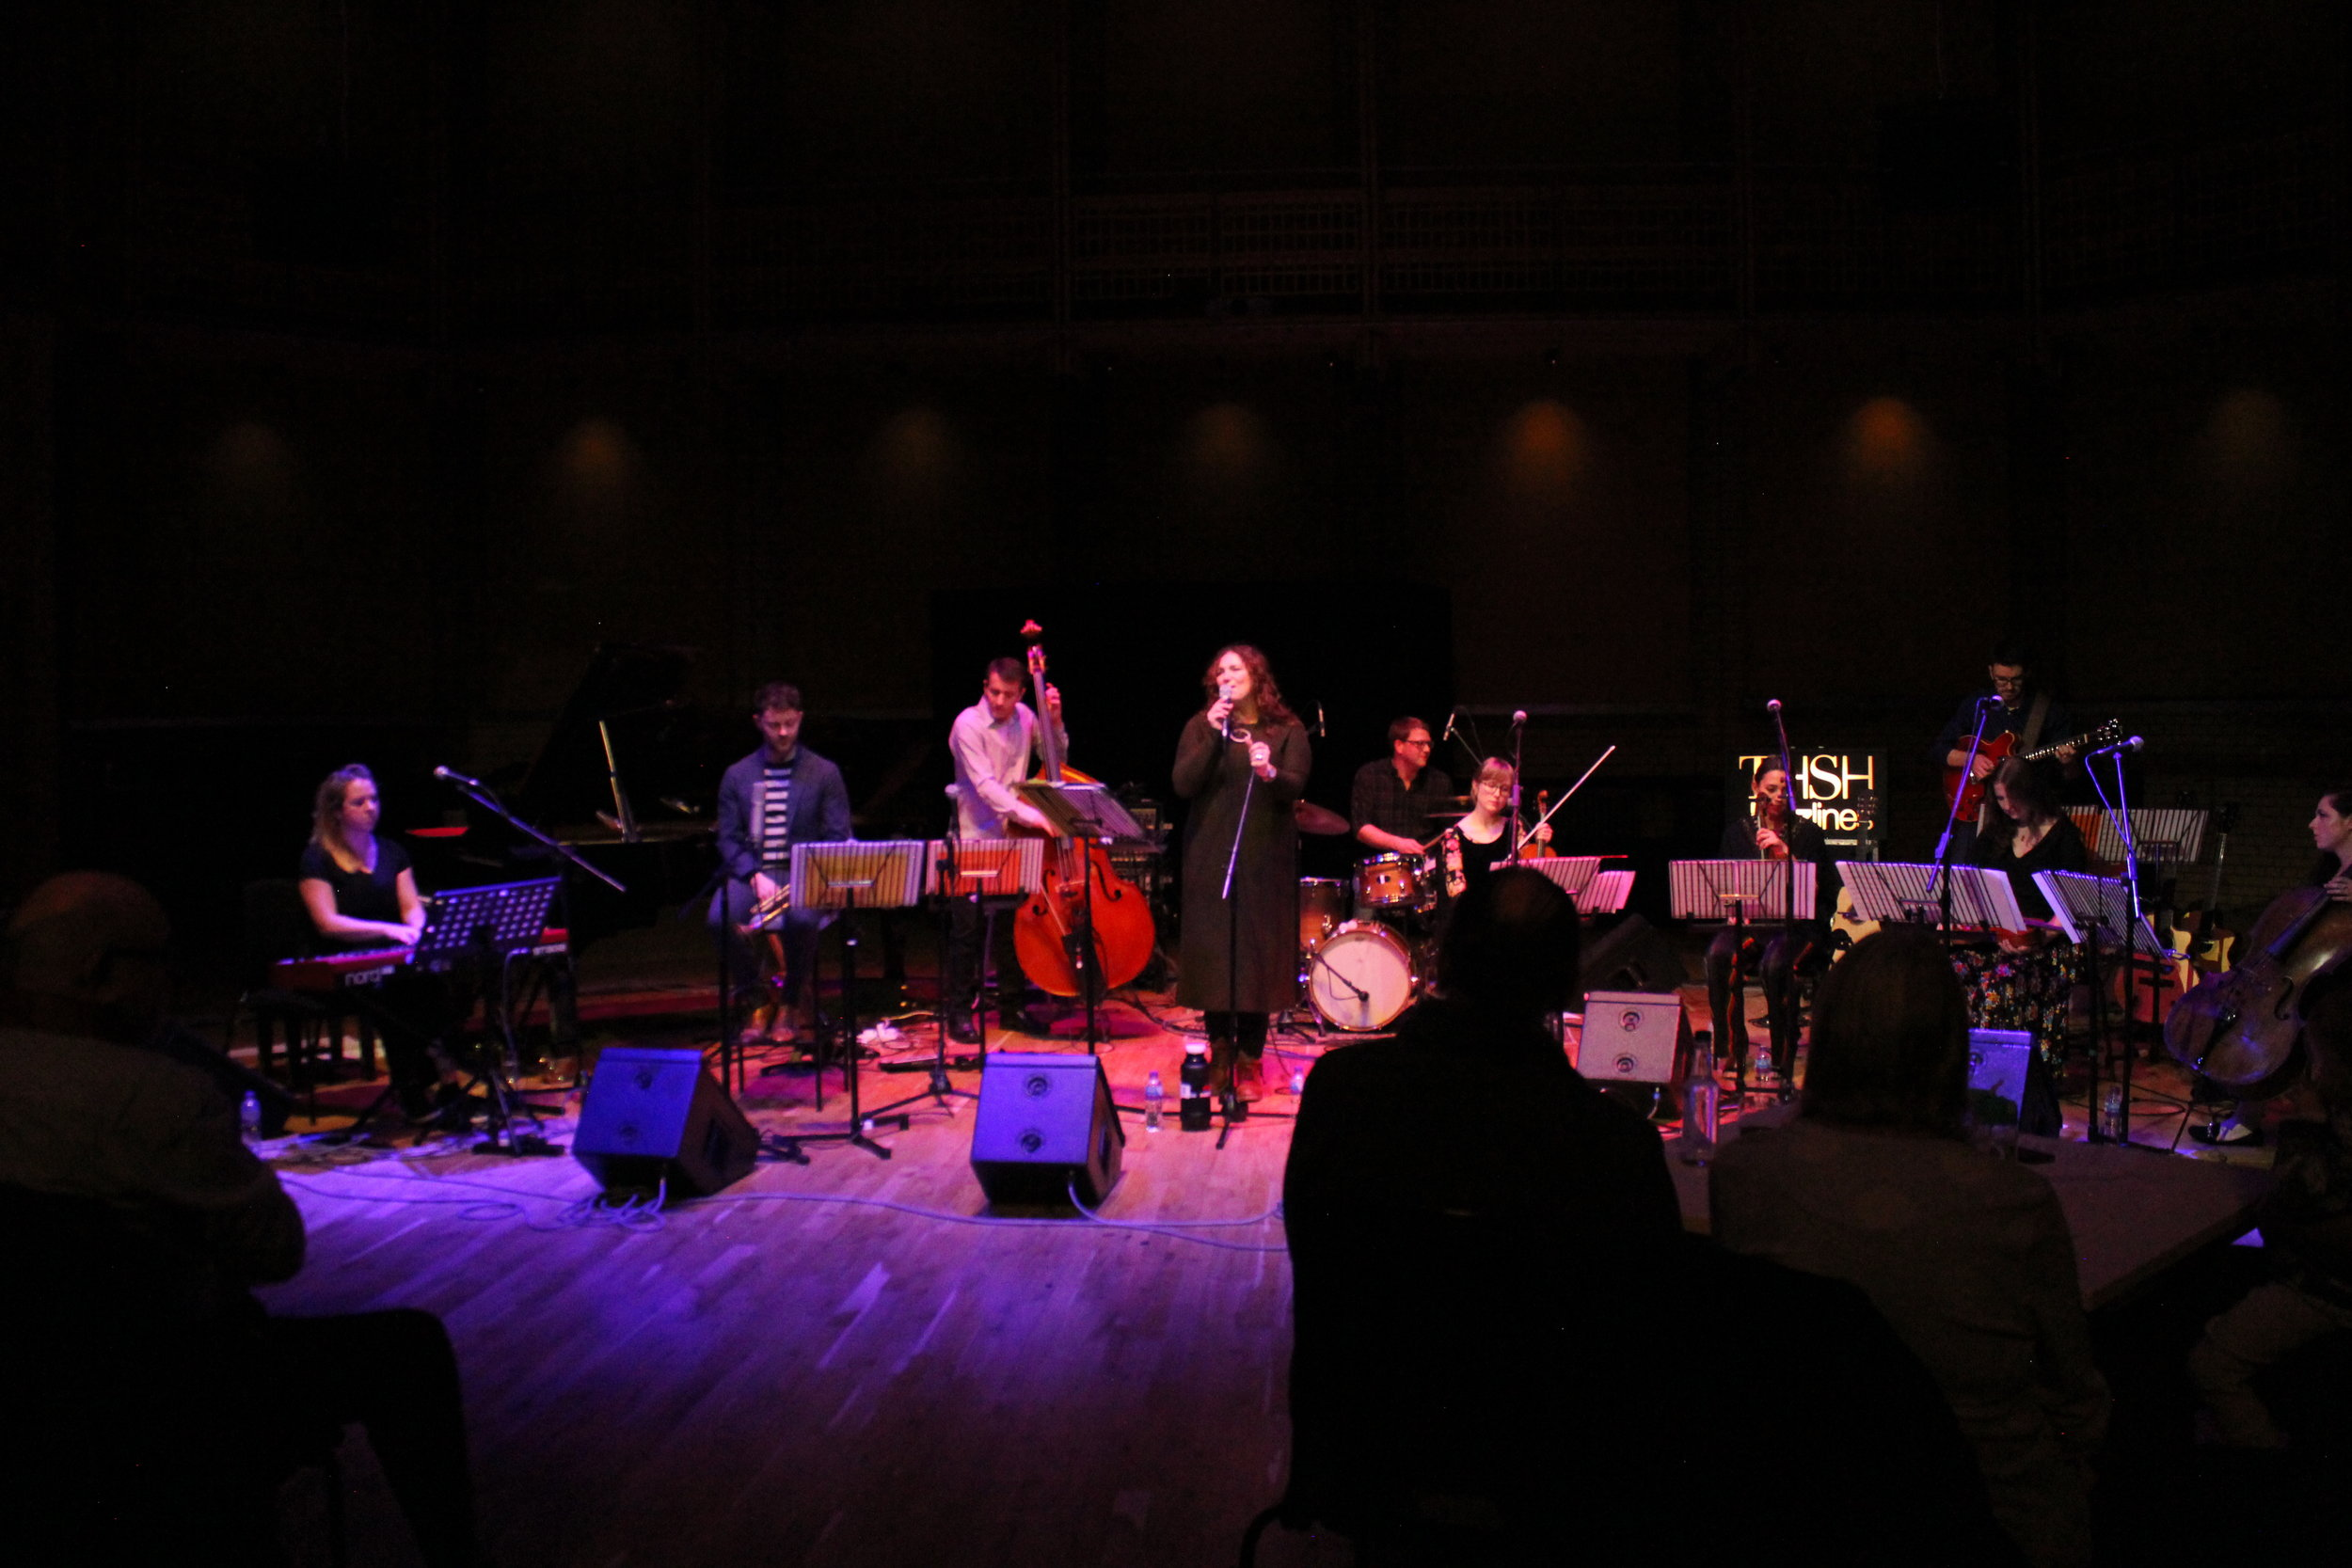 Sara Colman Band live at Birmingham CBSO Centre featuring Steve Banks